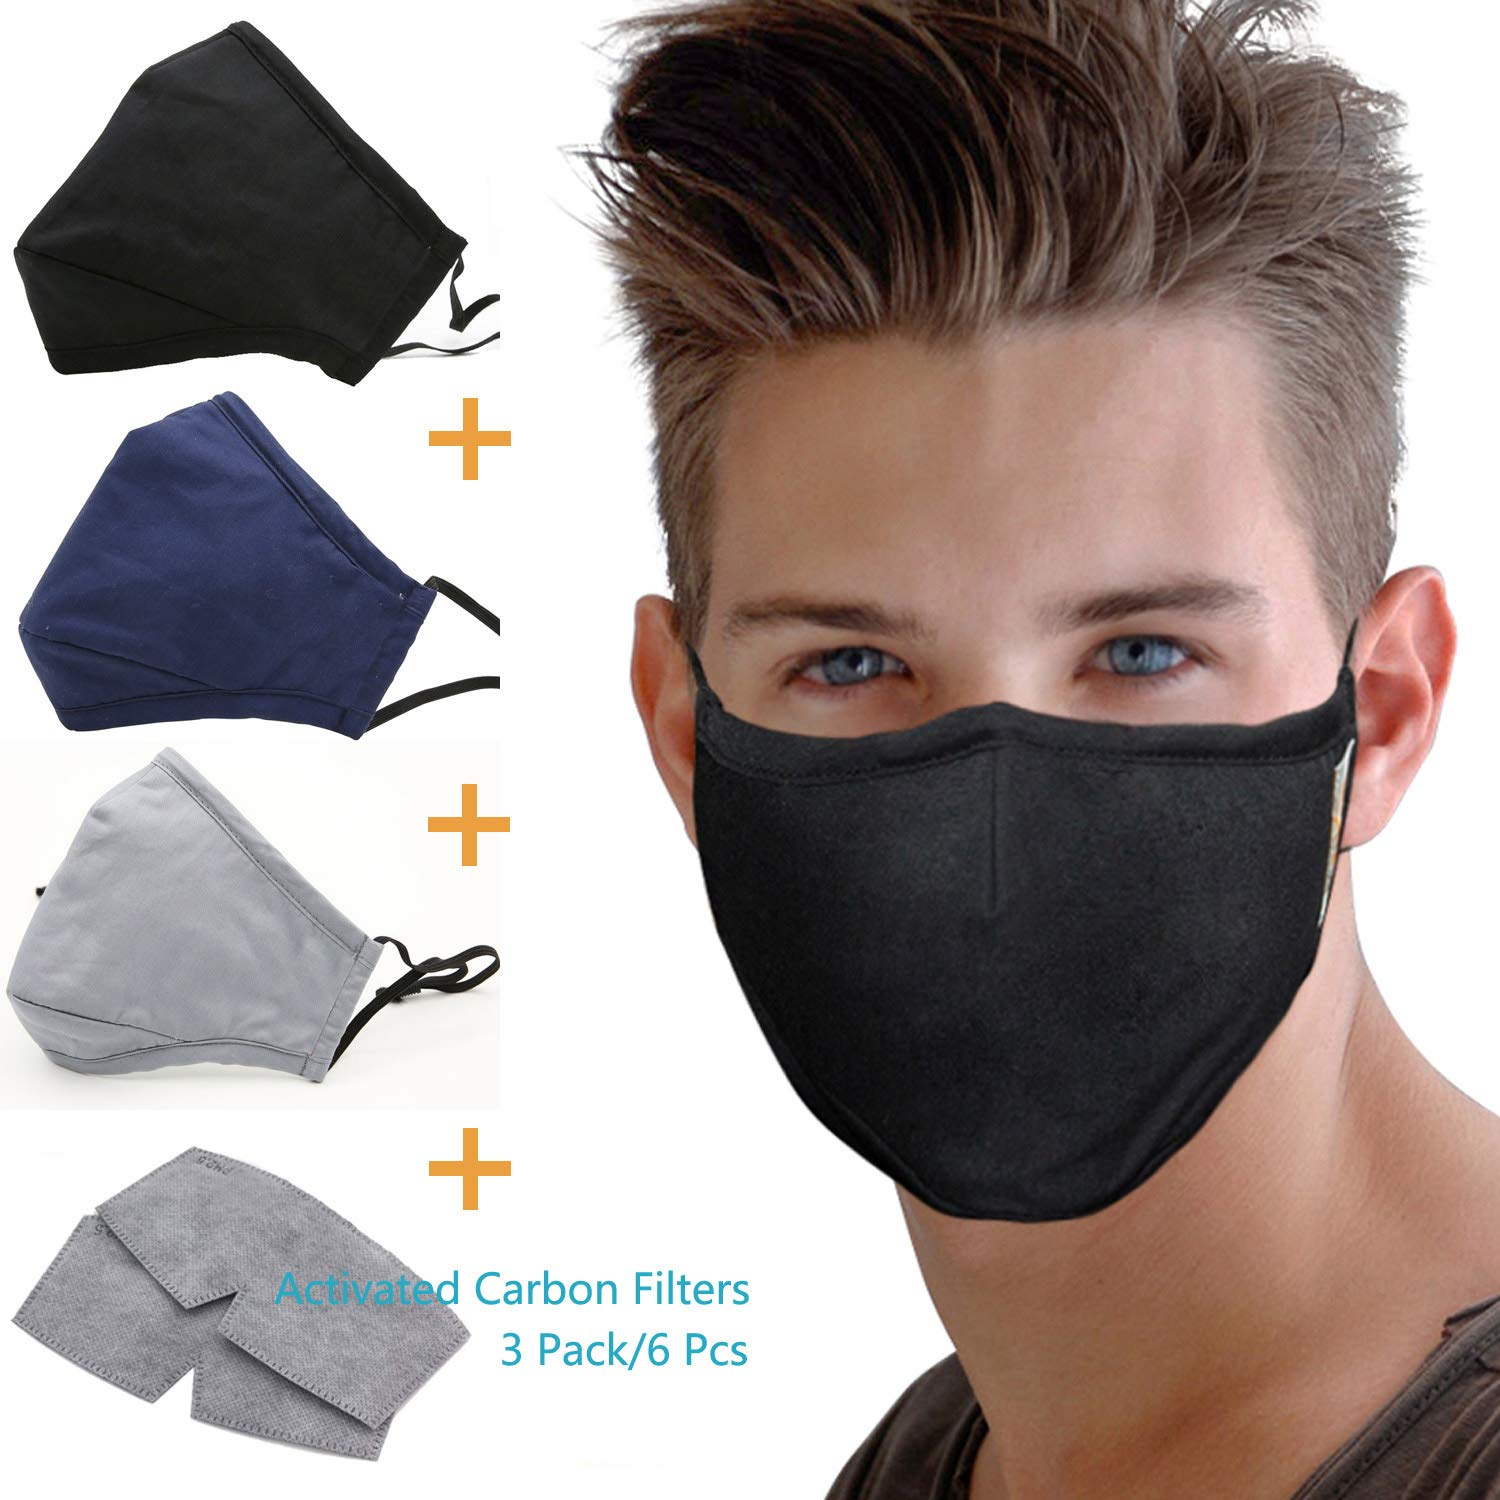 Activated Carbon Filter Anti Dust Face Mouth Mask, WITERY Warm Anti Dust Mask Anti-fog Mask Antibacterial Adjustable Earloop Mouth Mask Face Masks for Men Women